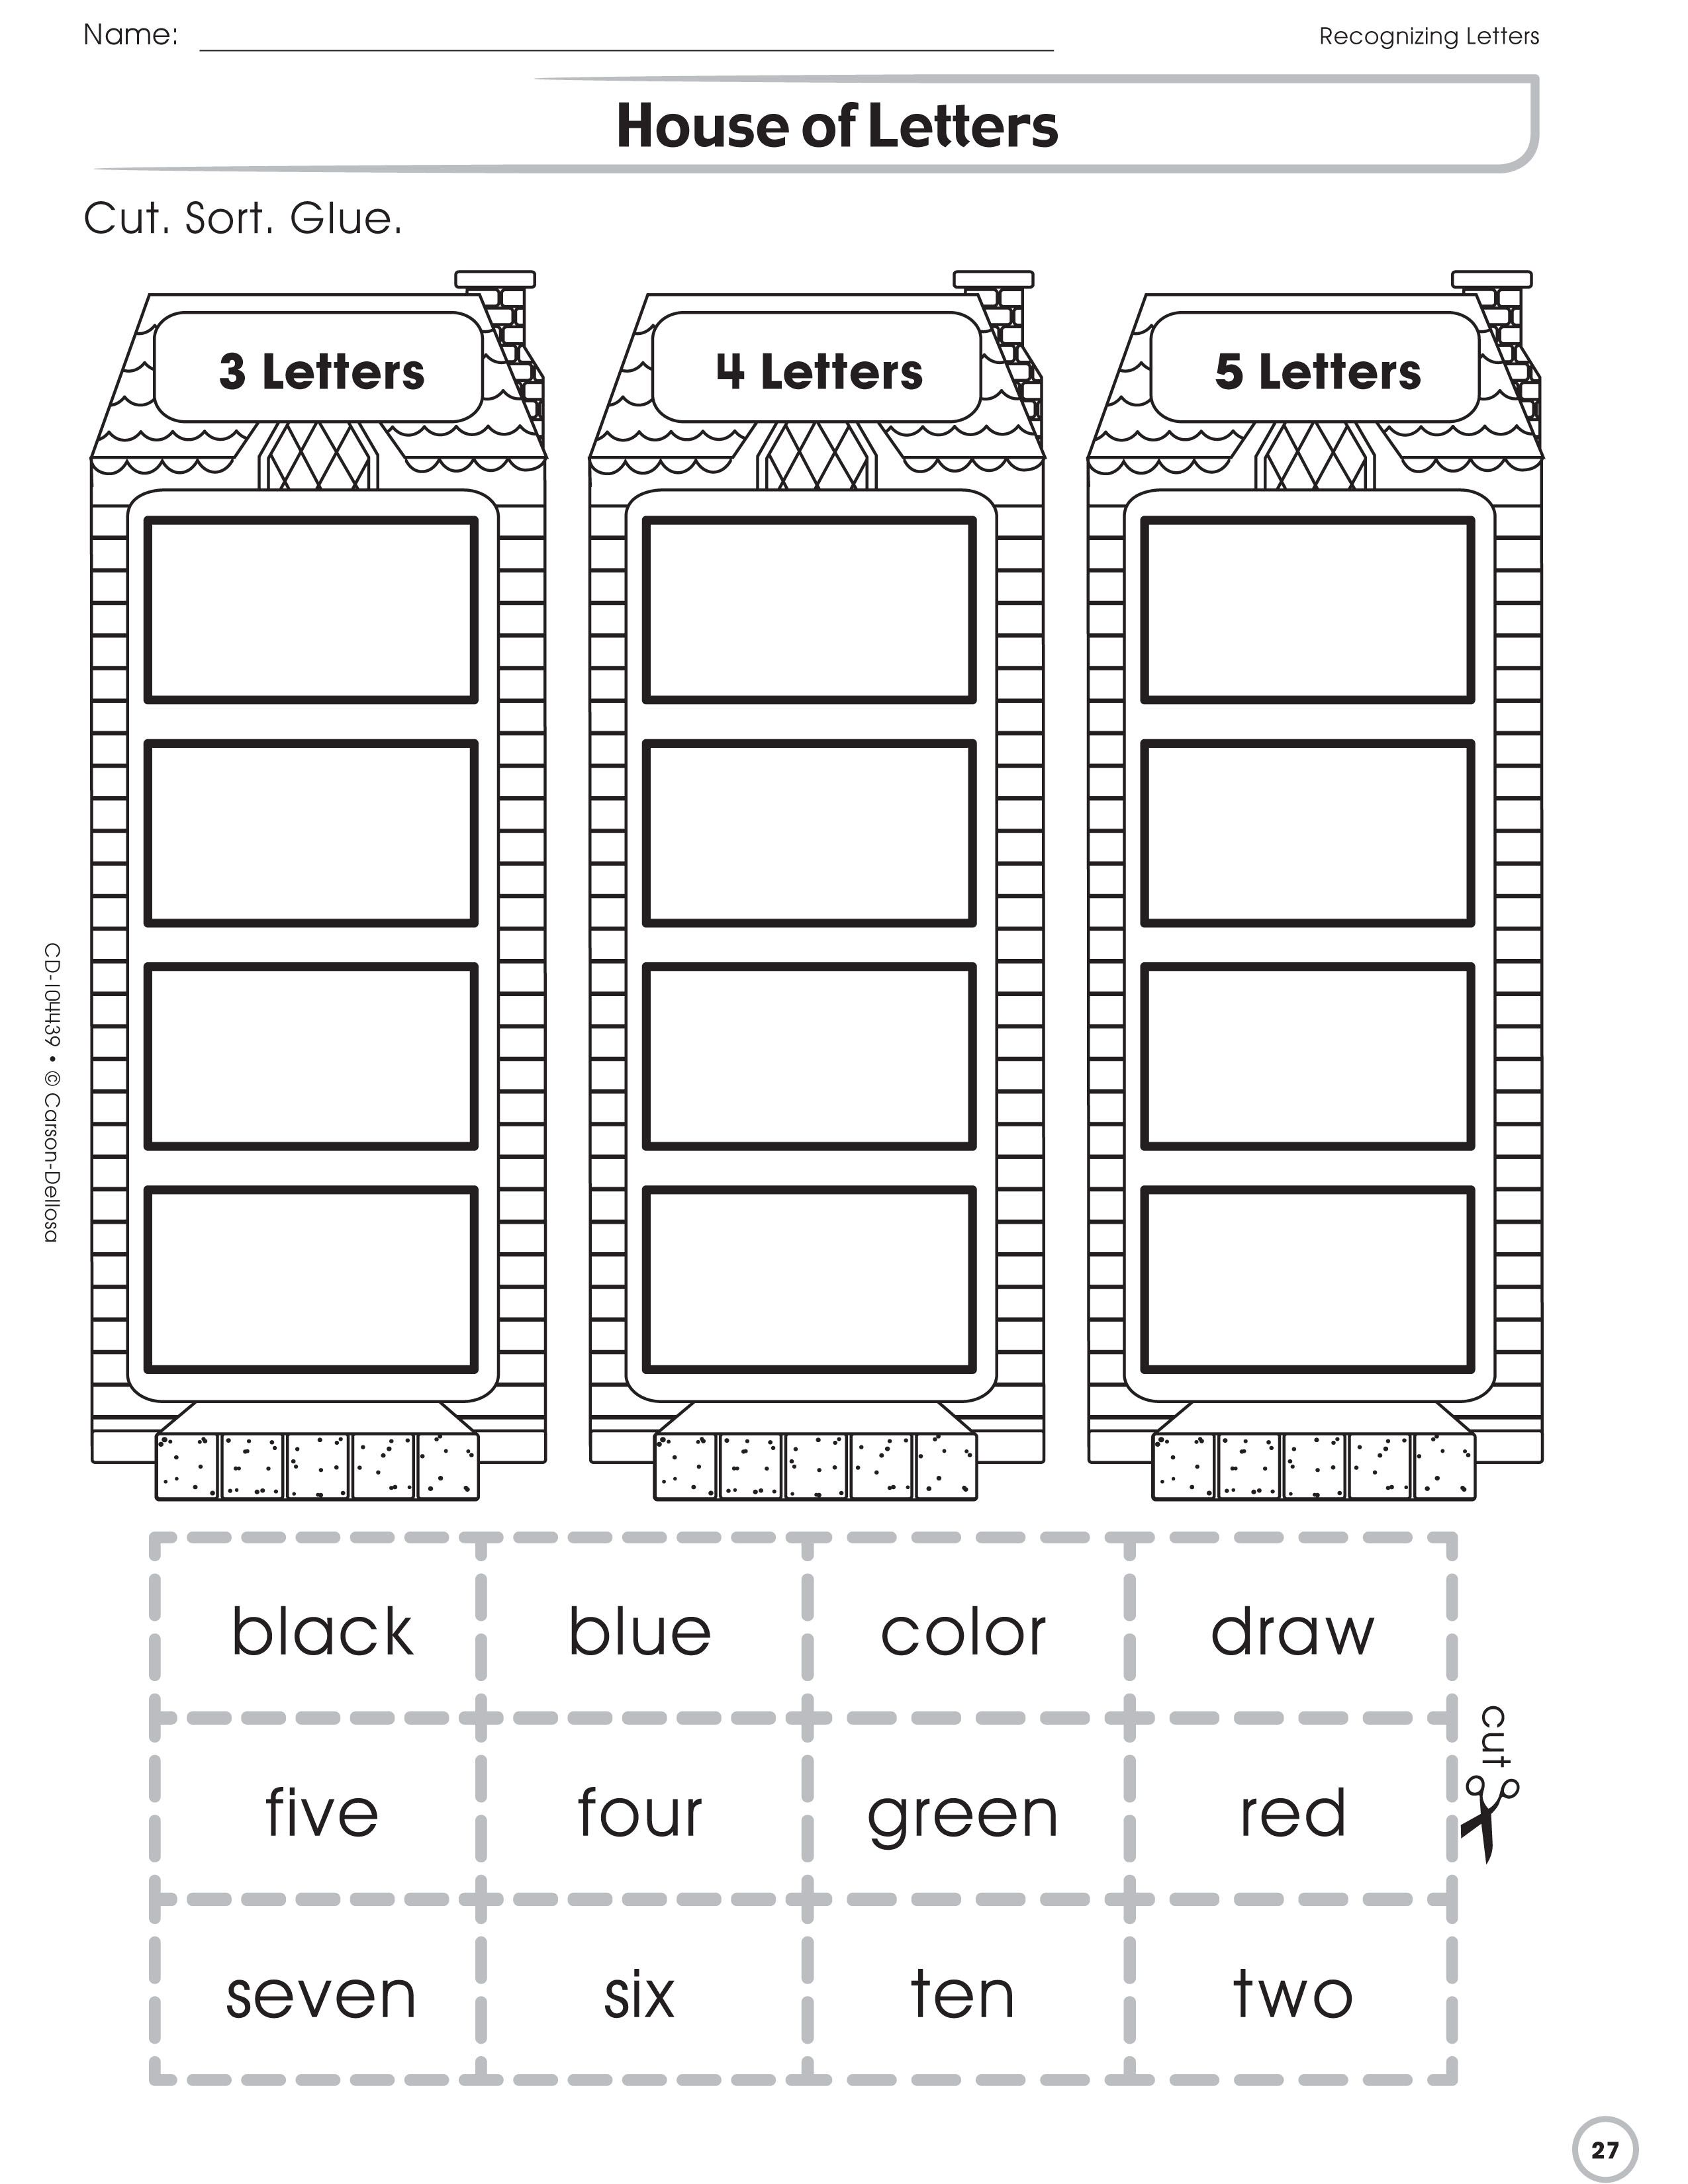 The House Of Letters Activity Page Helps Students Practice Cutting Sorting And Pasting